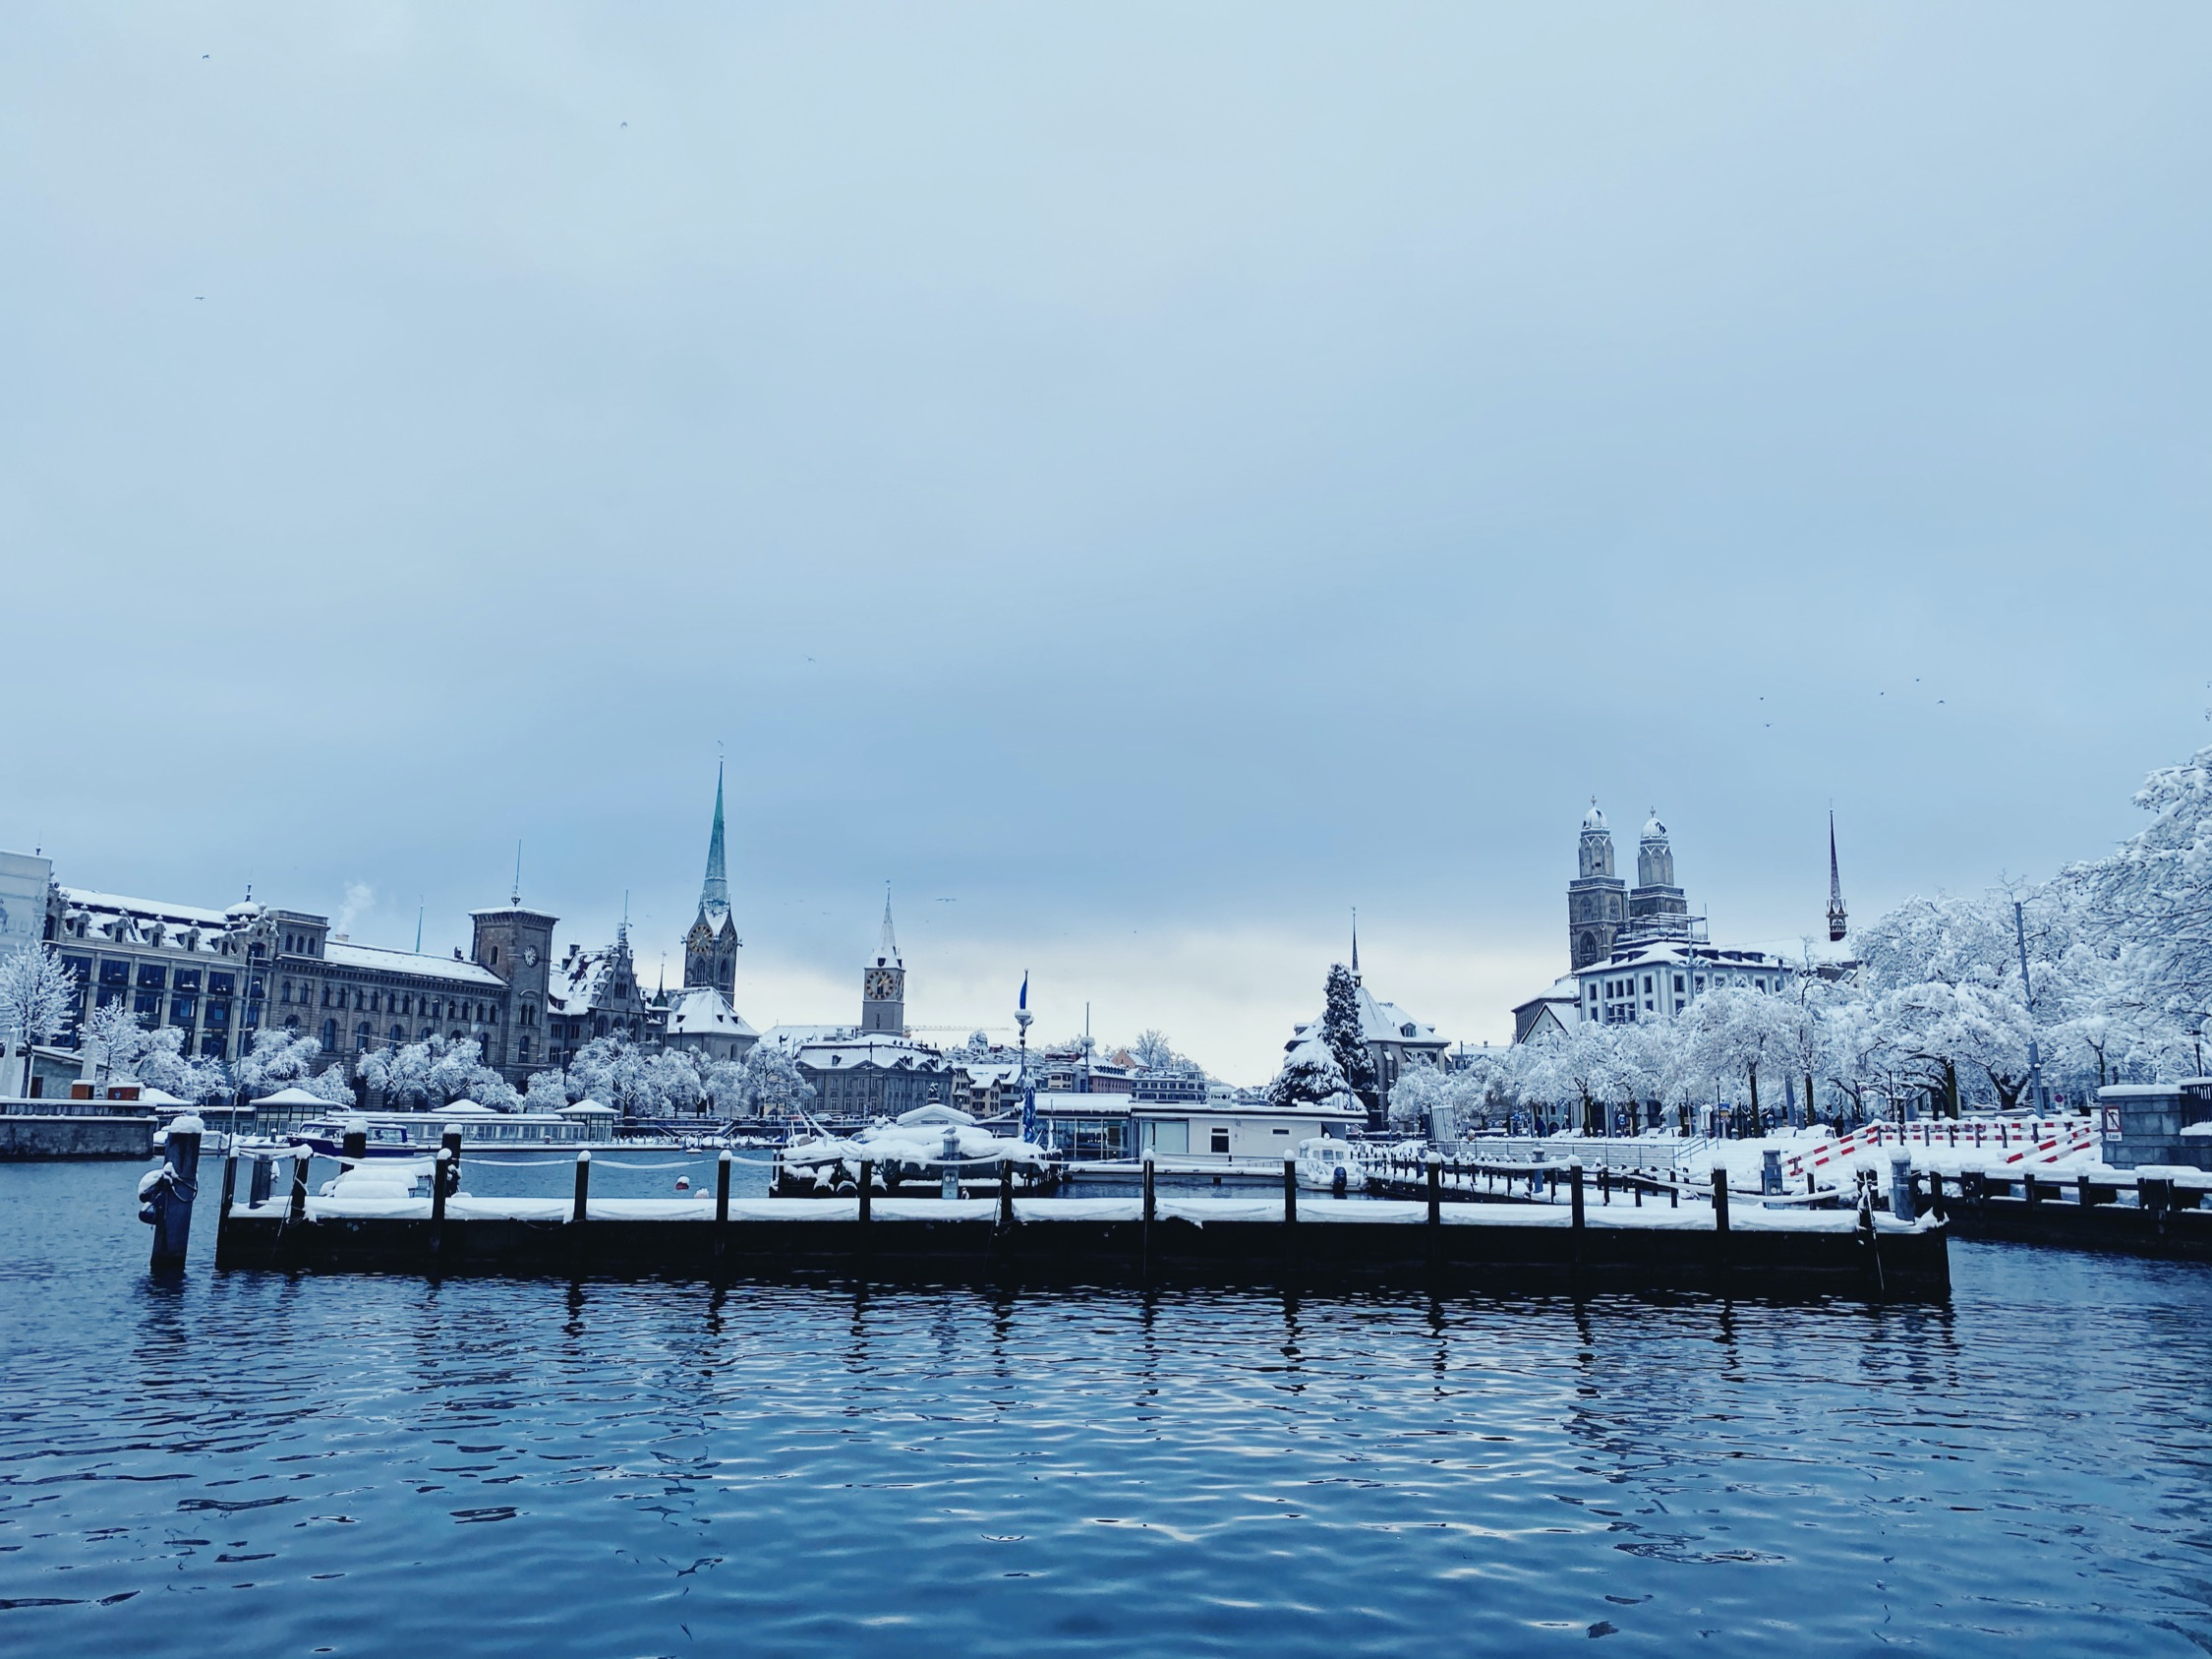 Record snowfall in Zurich, January 2021